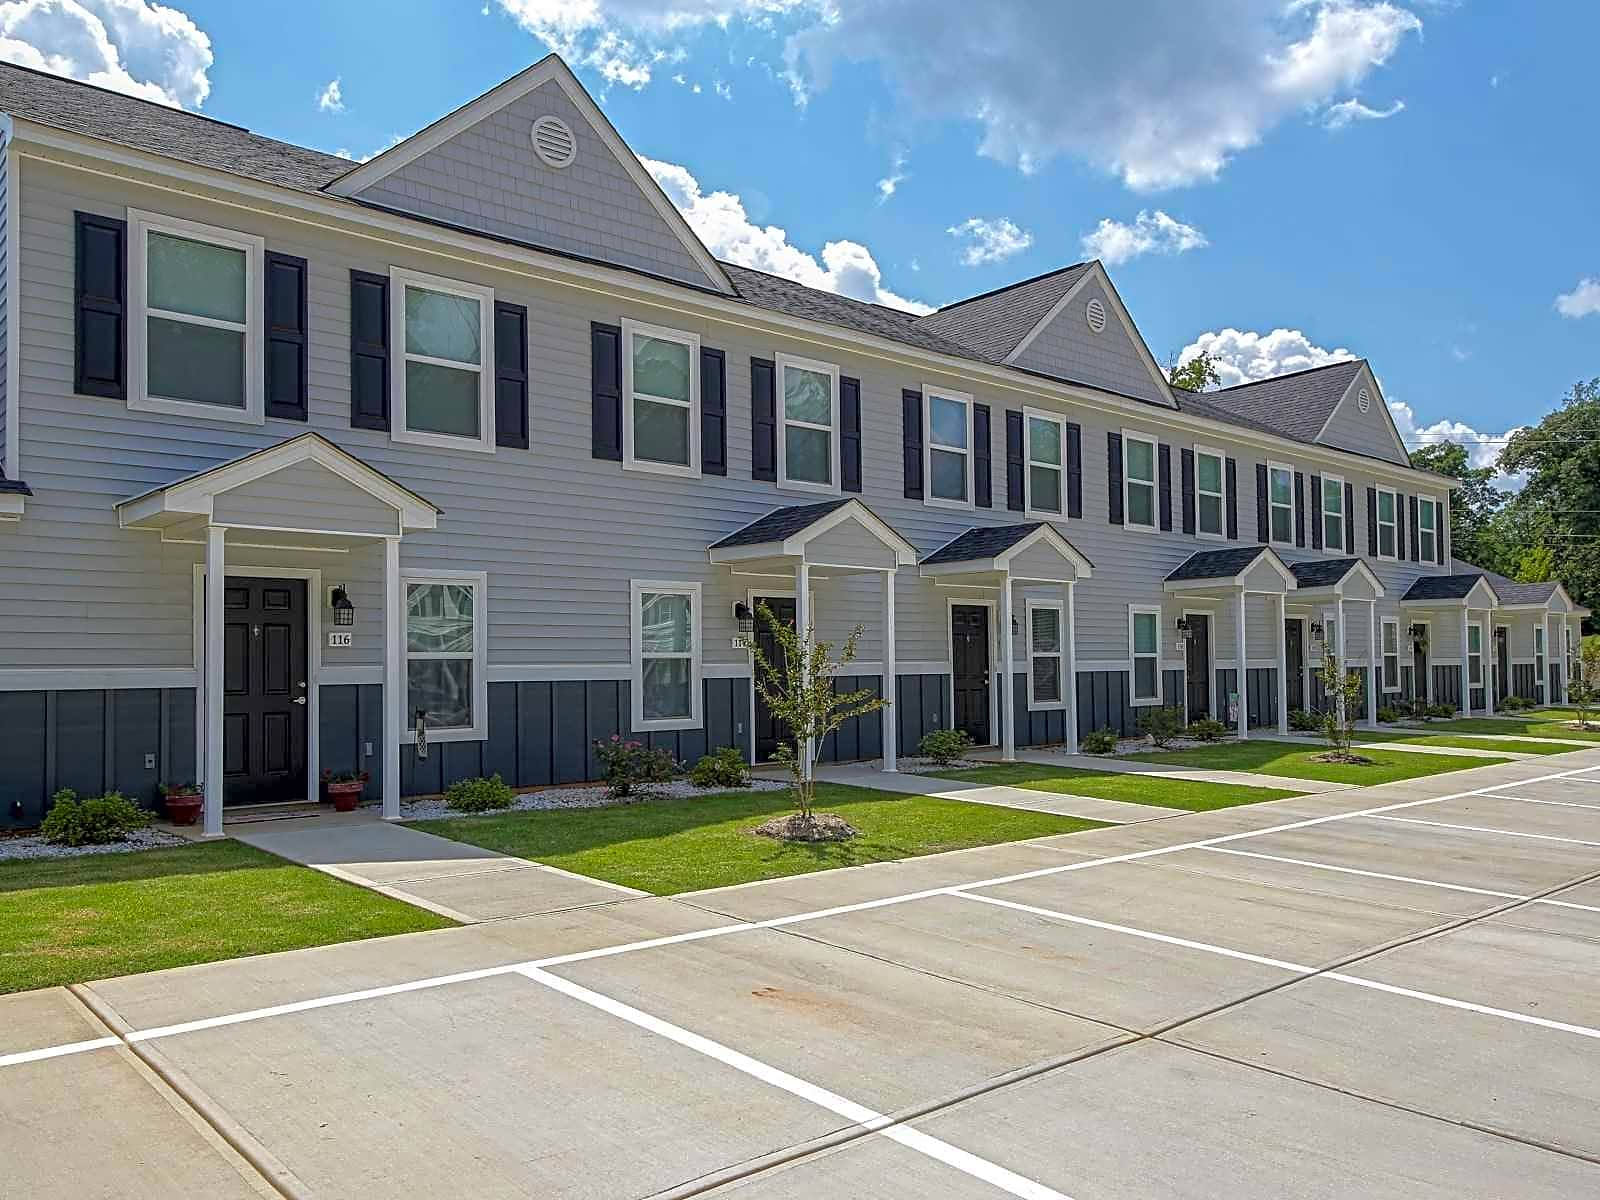 Apartments Near Lander Barrington Apartments for Lander University Students in Greenwood, SC